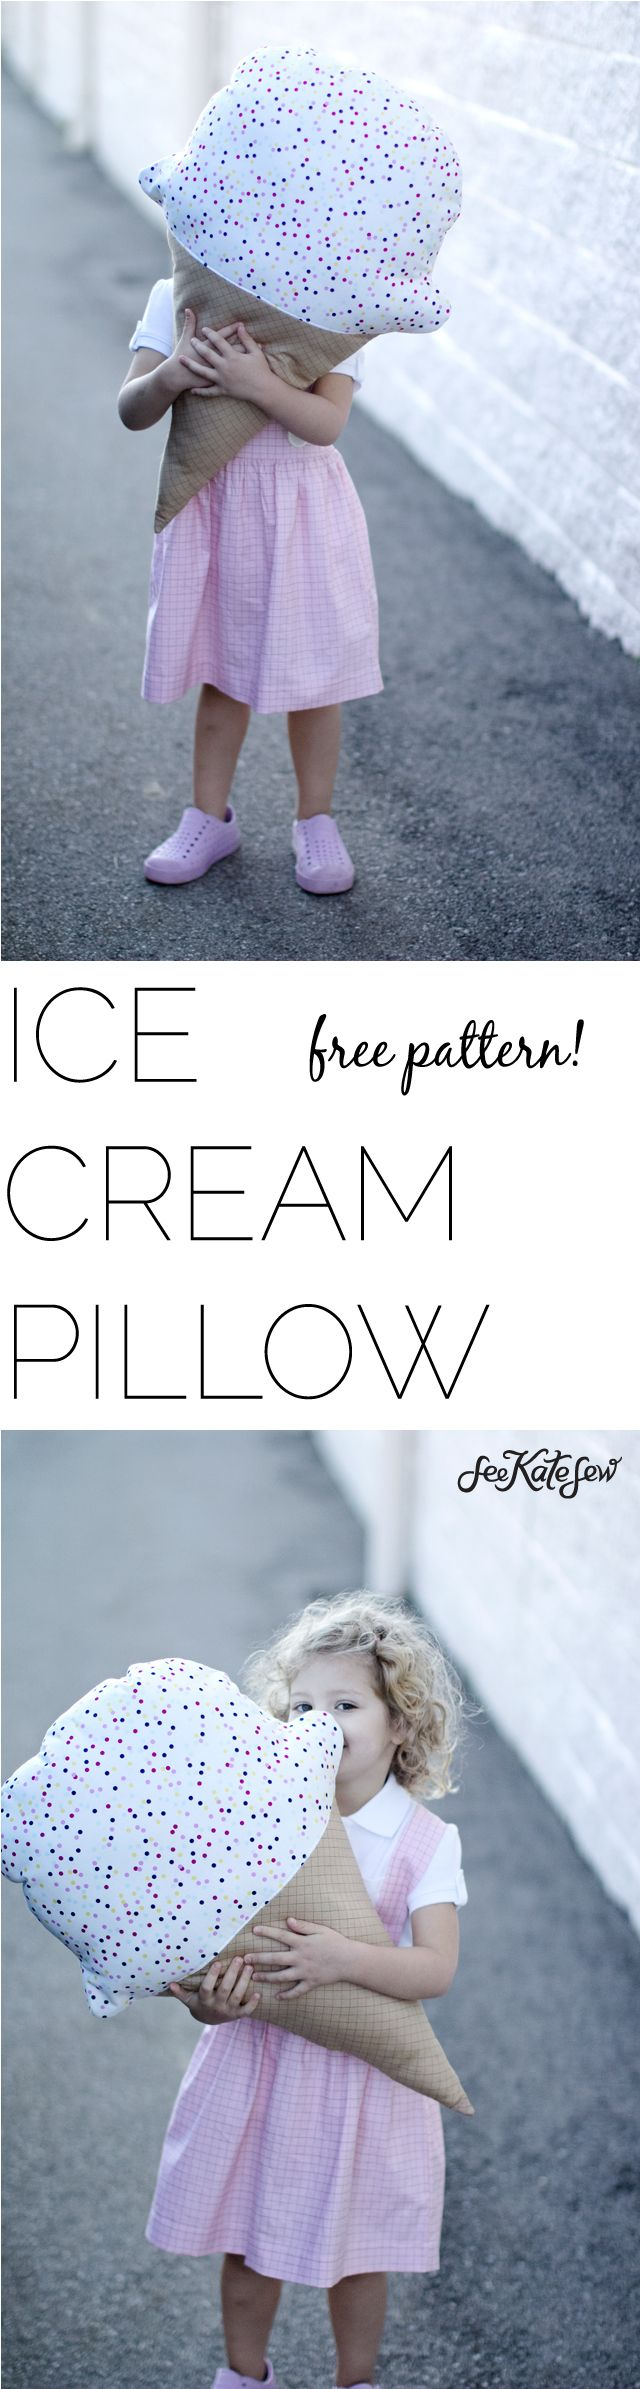 Ice Cream Pillow Project | See Kate Sew